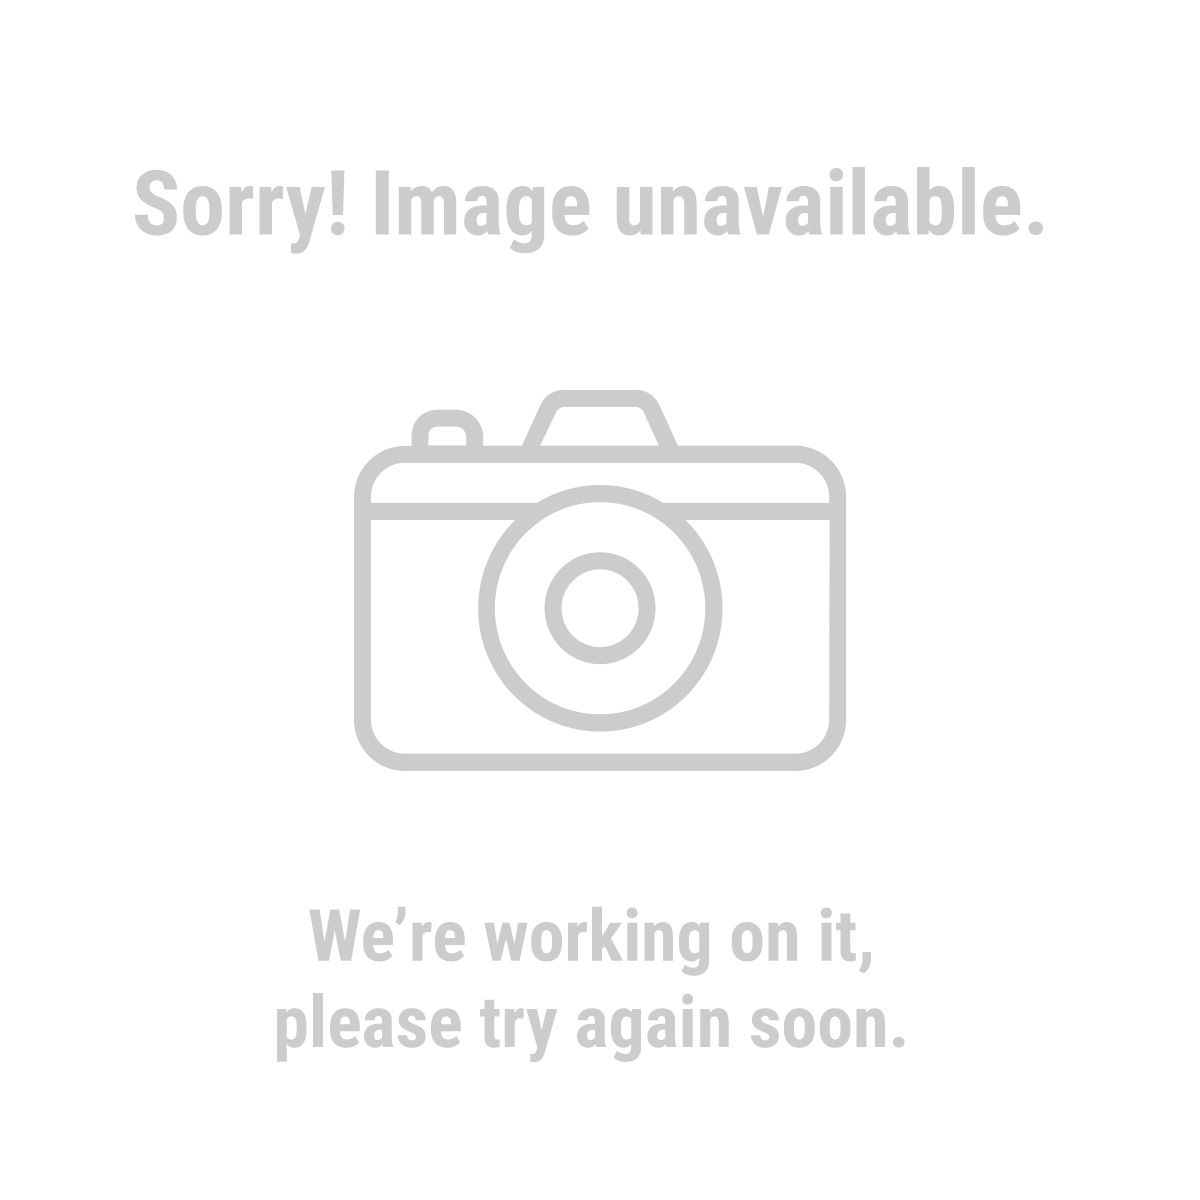 Haul-Master® 61956 1 in. x 8 ft. Camouflage Ratcheting Tie Downs 4 Pc